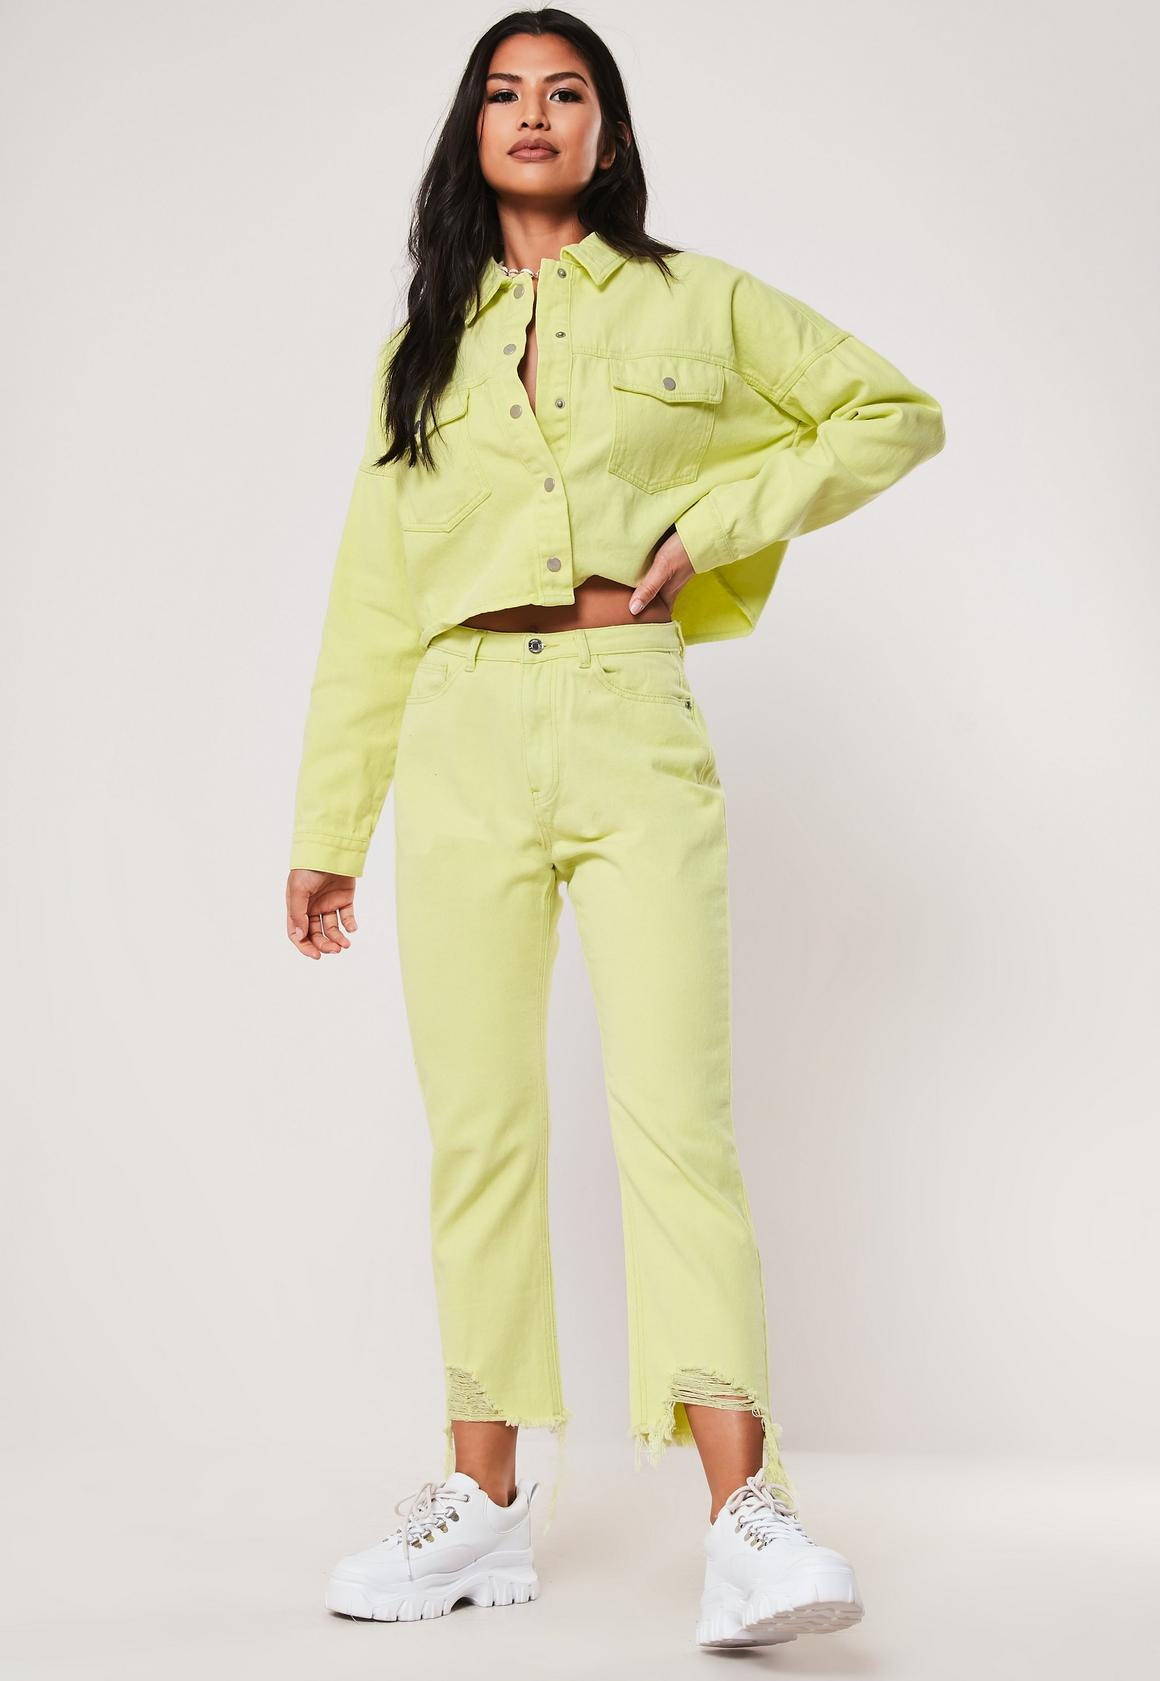 81eaf73d6b Yellow Neon Washed Co Ord Cropped Utility Pocket Denim Shirt